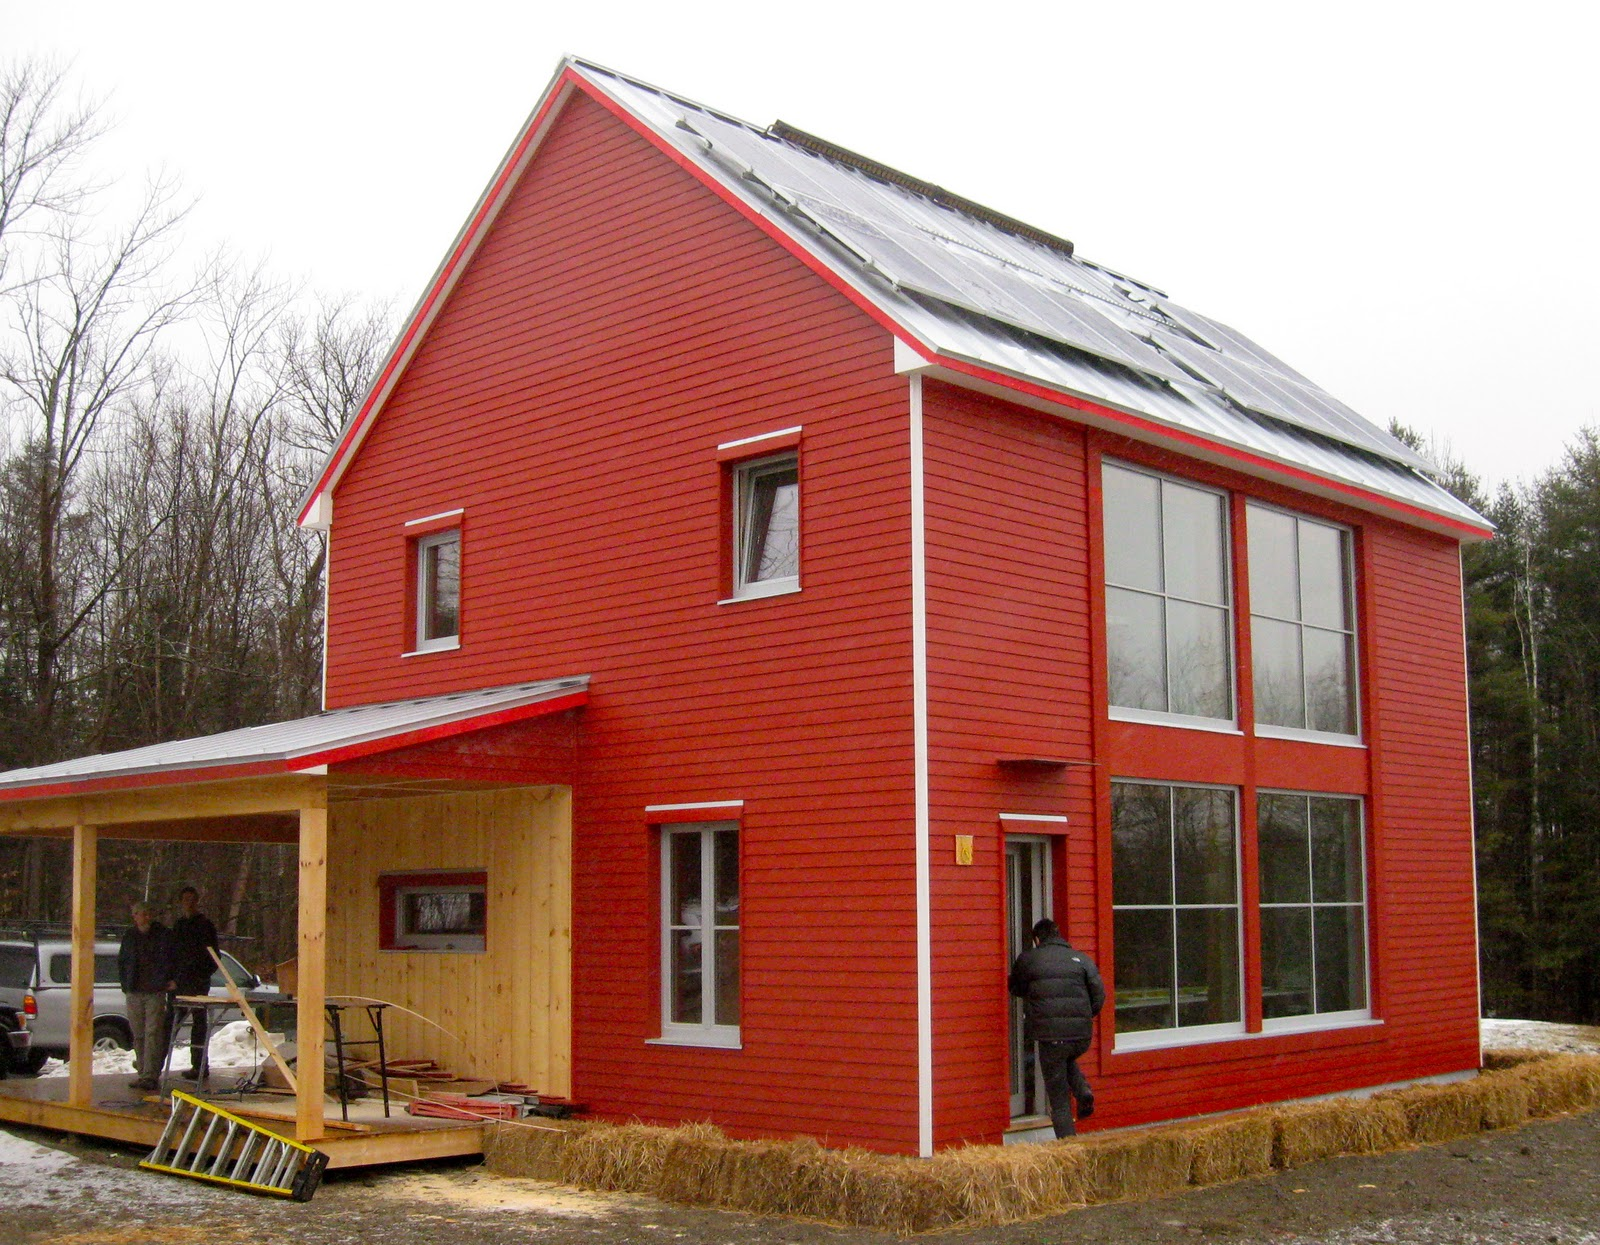 ... Unique Details And Construction Methods Used In The GO Passive House To  Achieve The Required Thermal Performance And Also Keep The Price At  Affordable ...